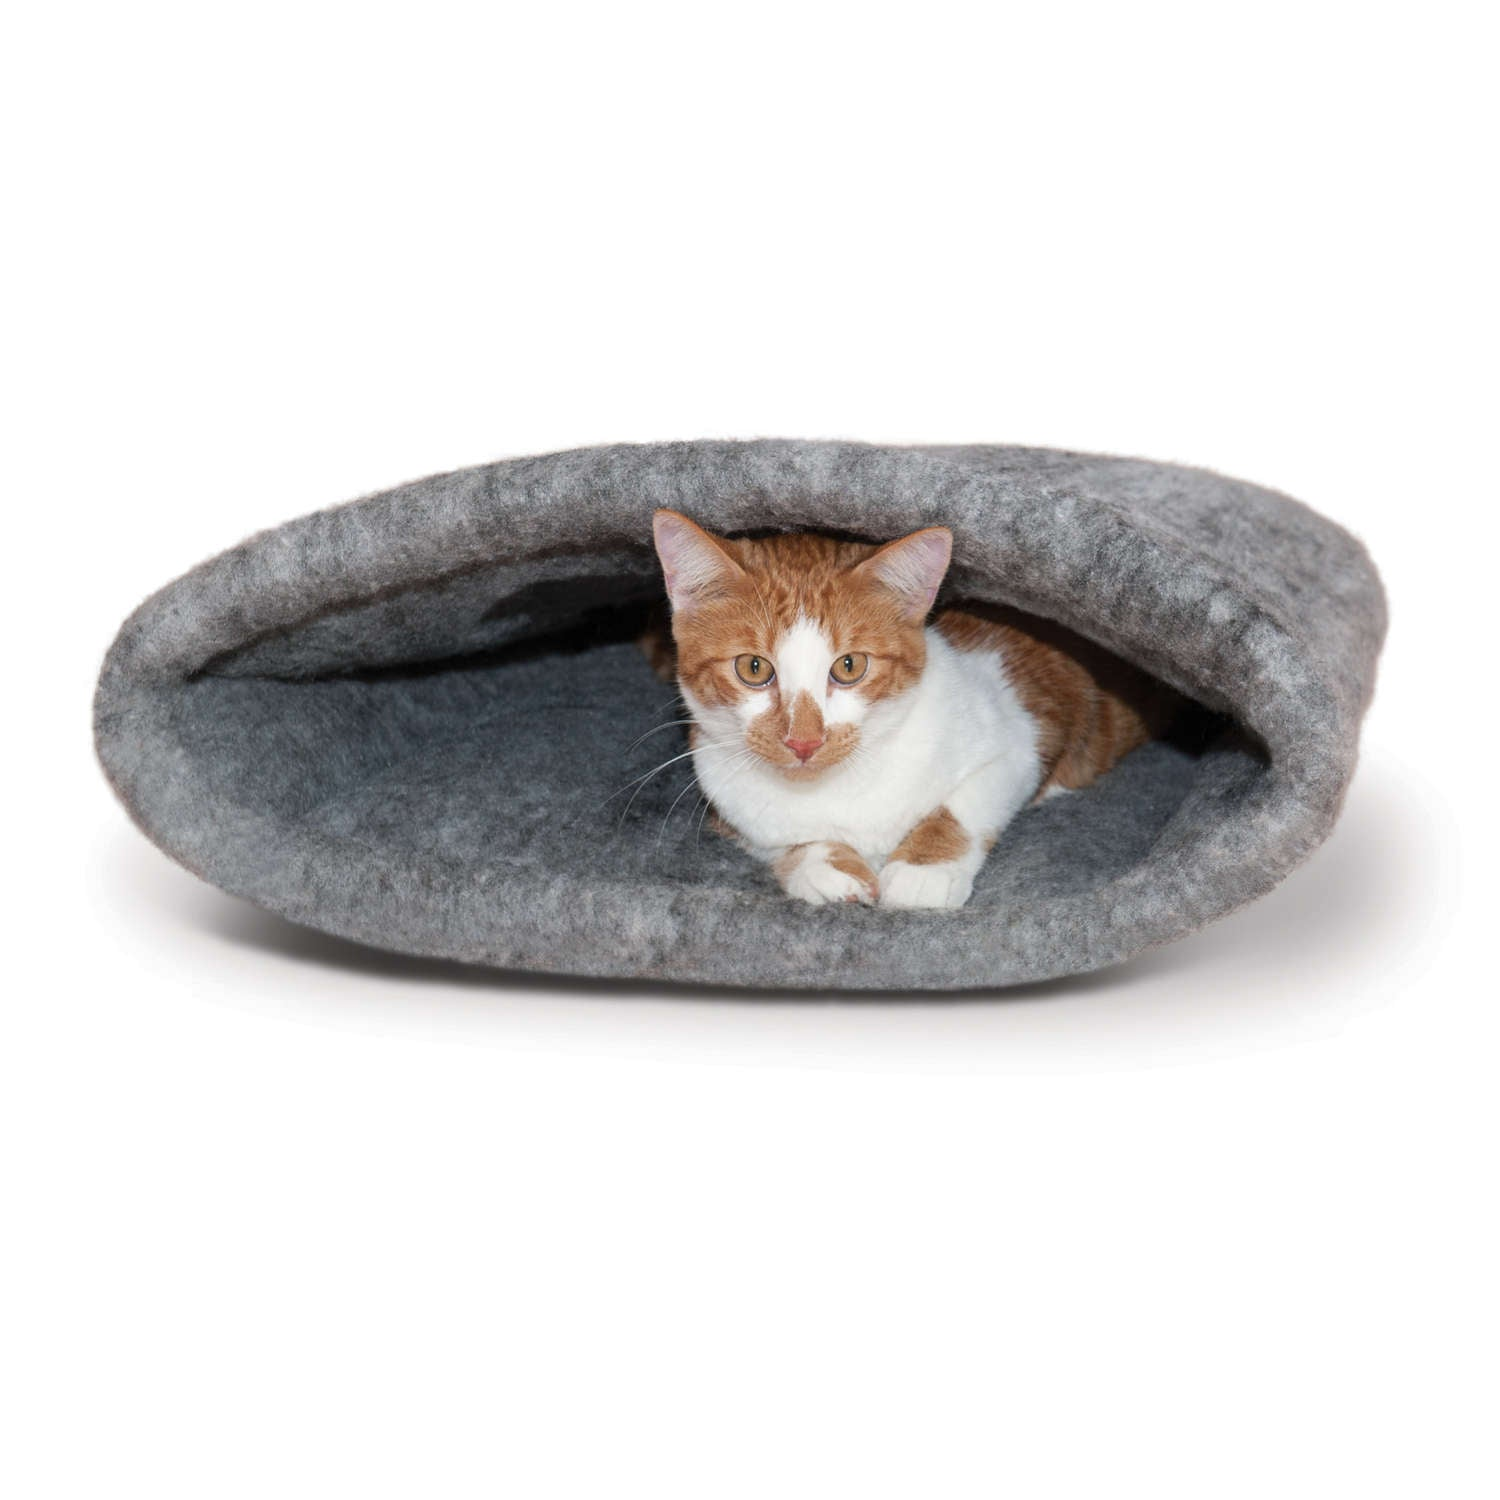 "K&H Pet Products Amazin' Kitty Sack Gray 22"" x 20"" x 20"" Cat Beds - London the Local"